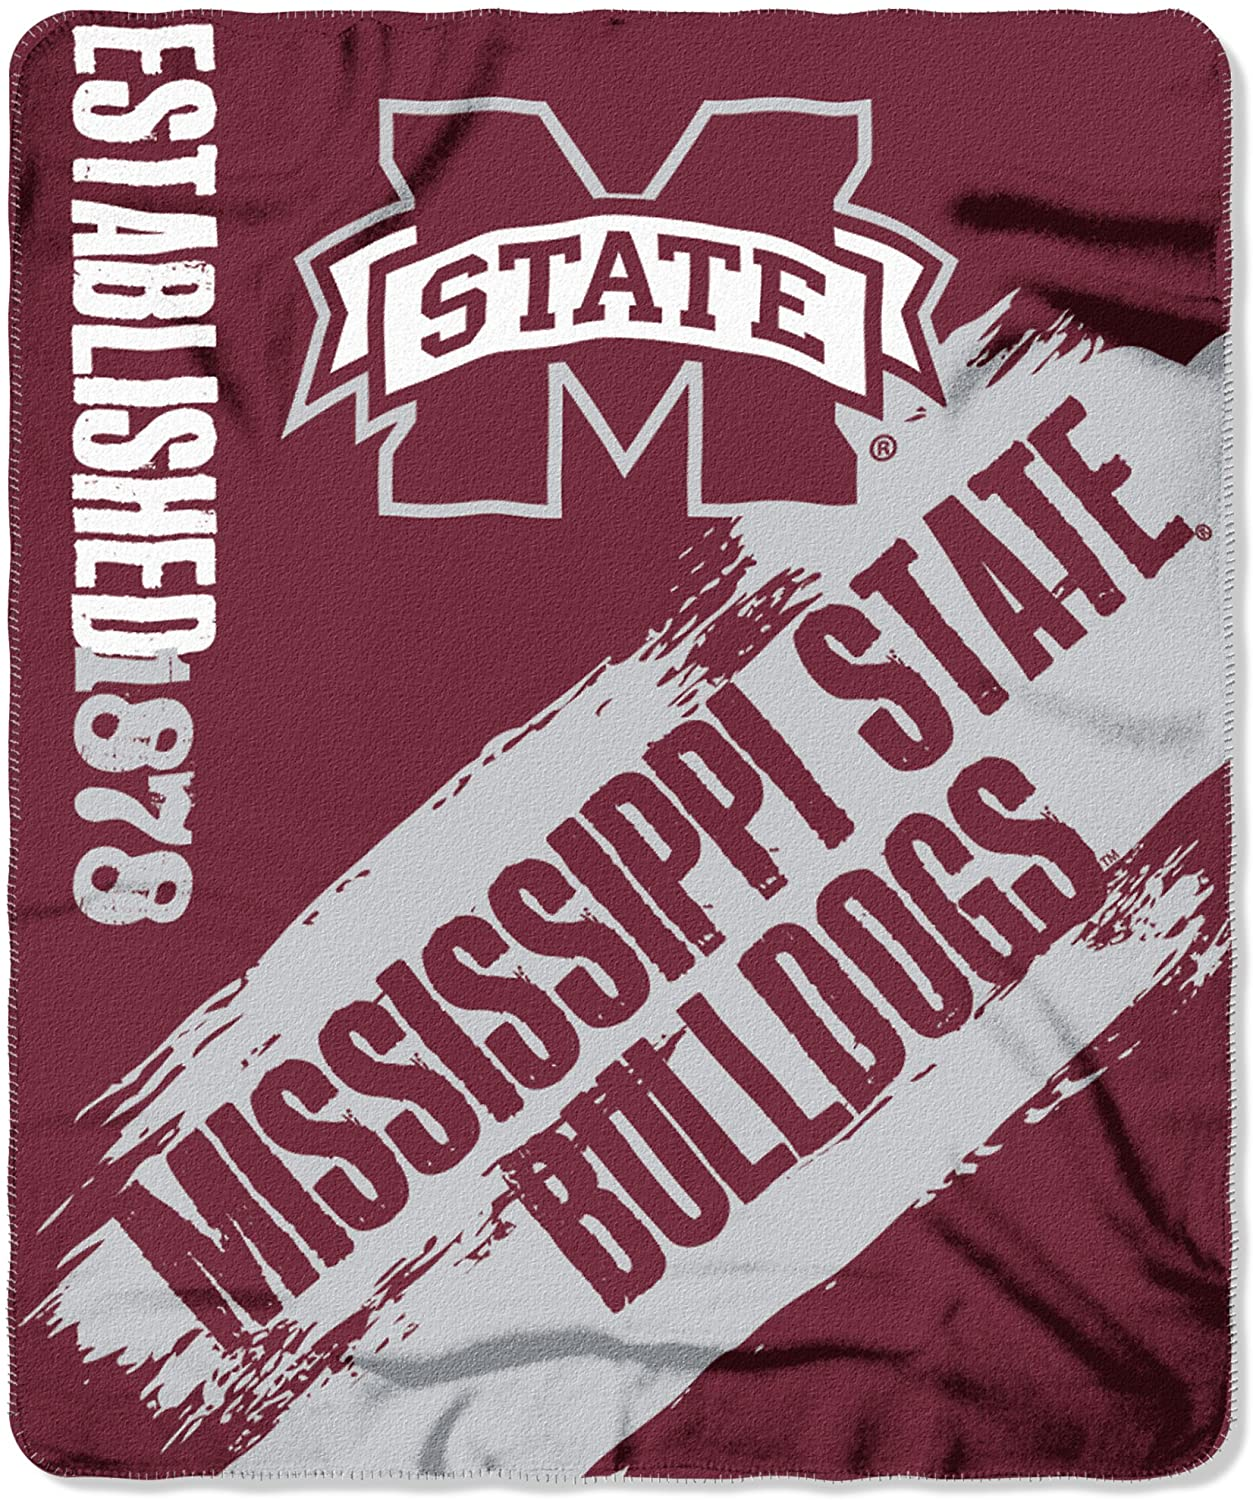 Officially Licensed Ncaa Printed Throw Mississippi State Bulldogs Fleece Blanket